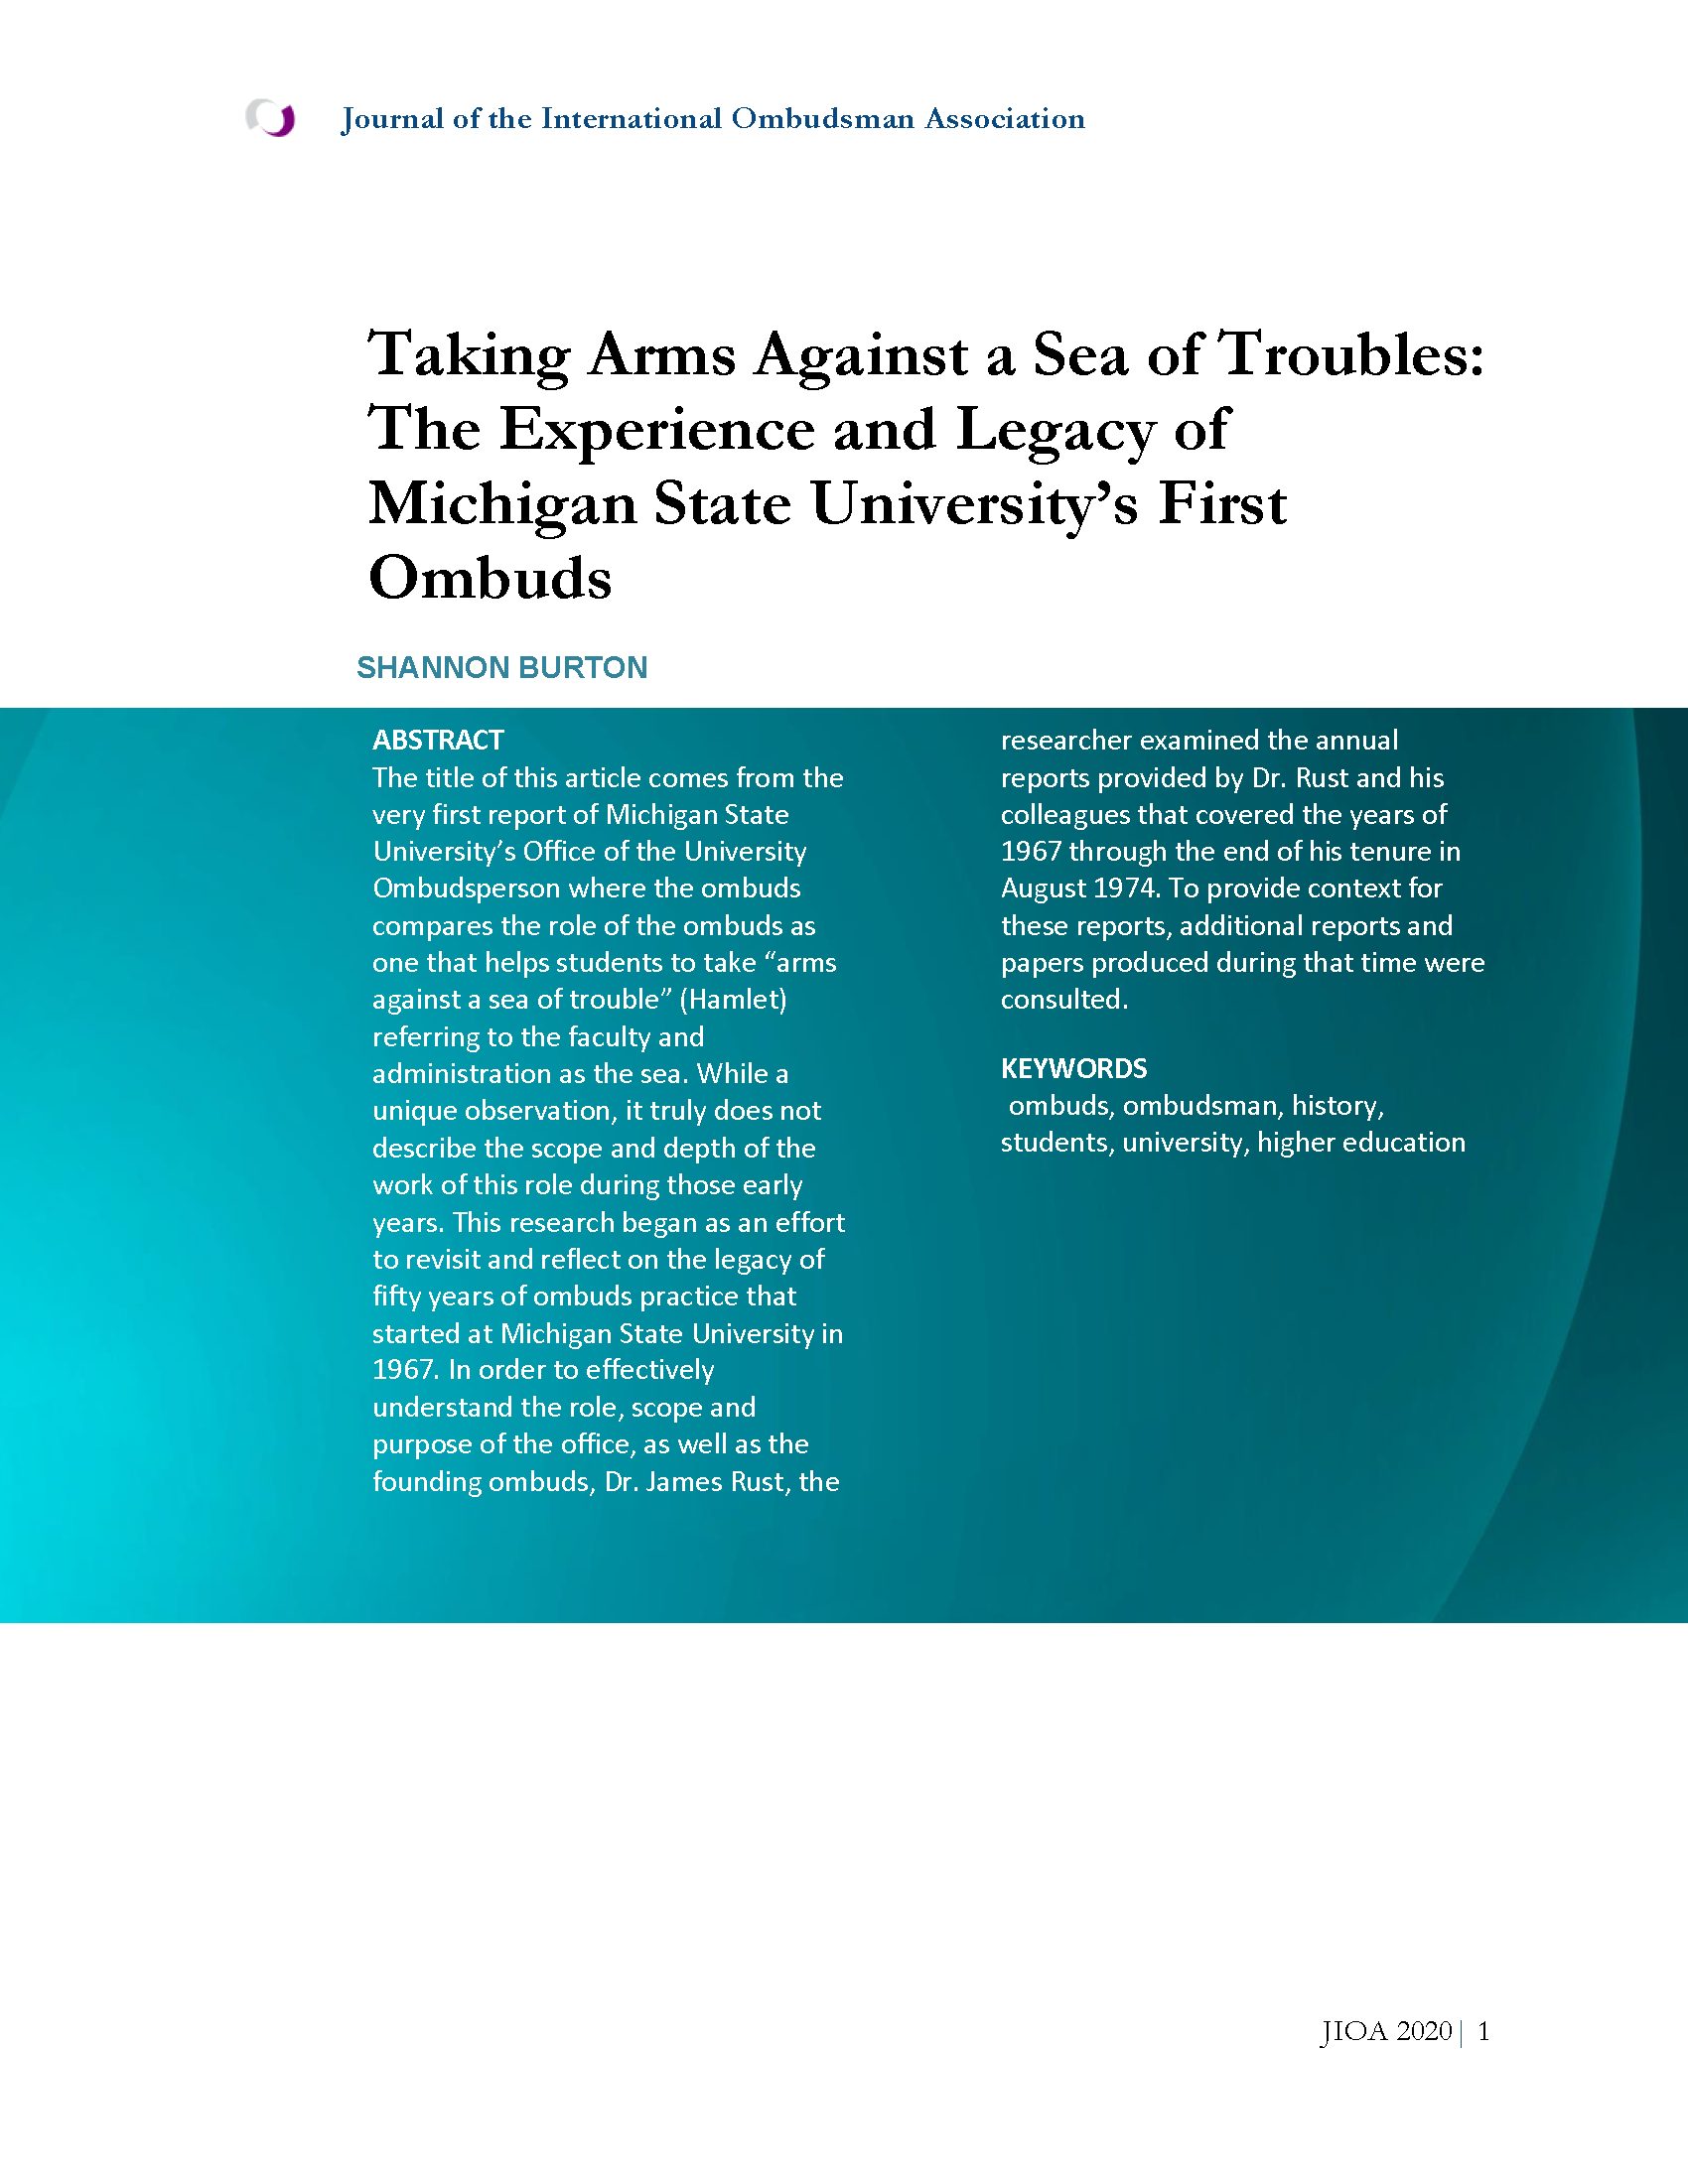 Cover Page for Taking Arms Against a Sea of Troubles: The Experience and Legacy of Michigan State University's First Ombuds